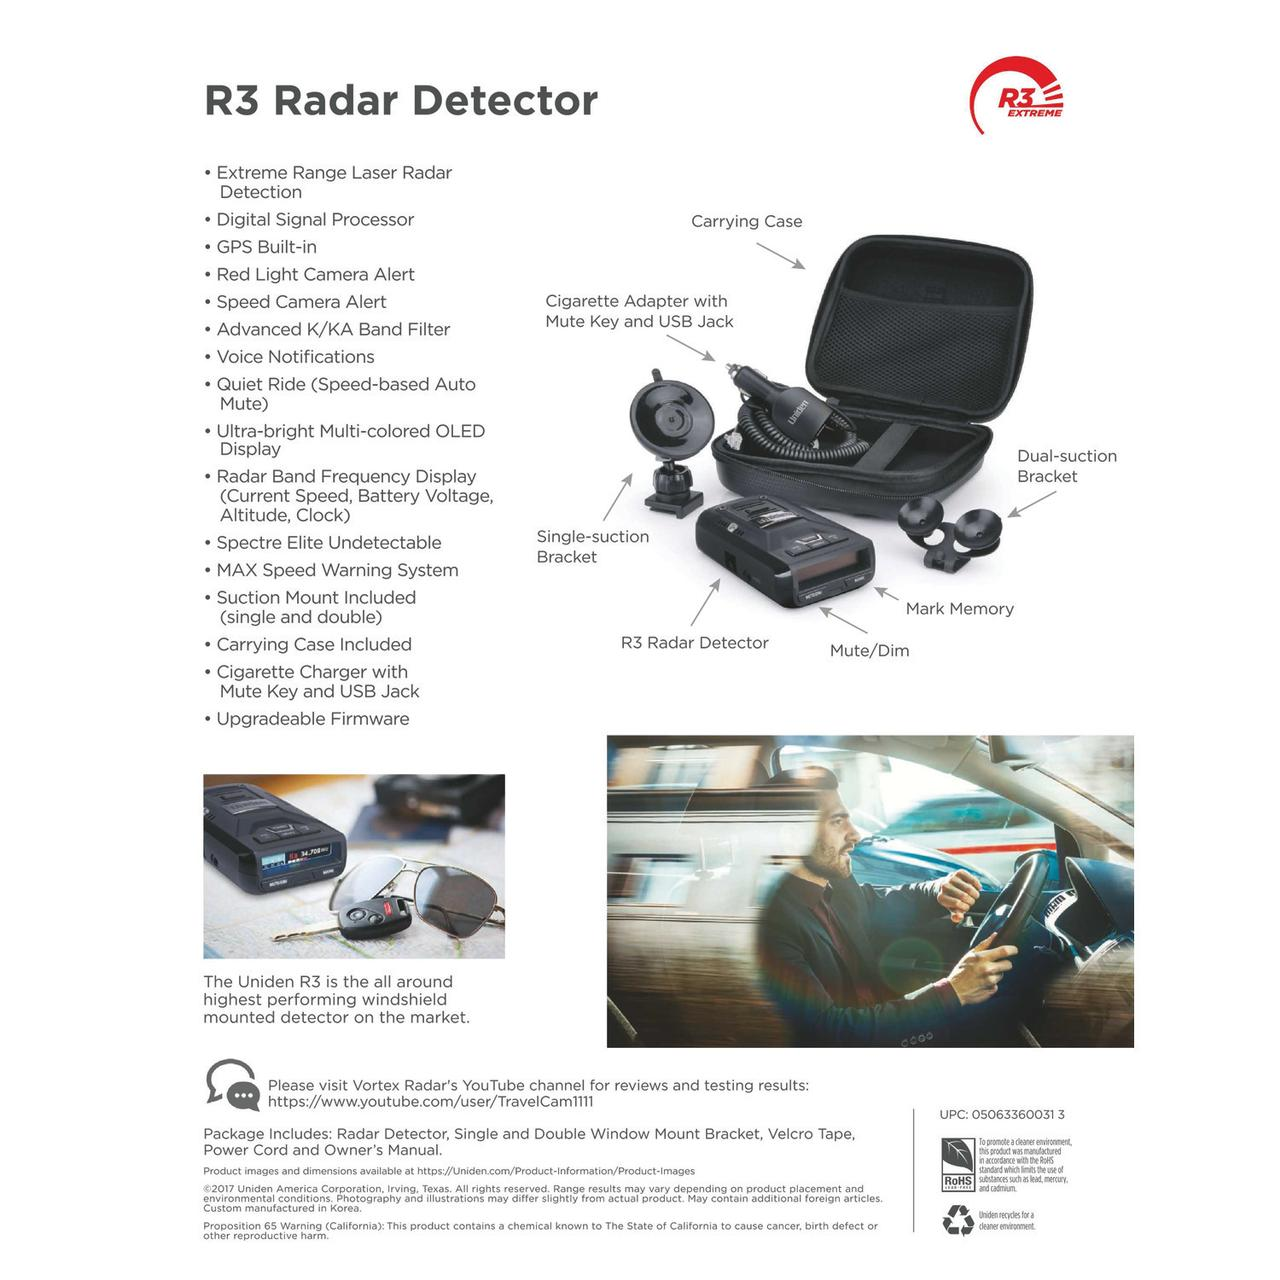 Radar detector Electric scooter and Car Audio t